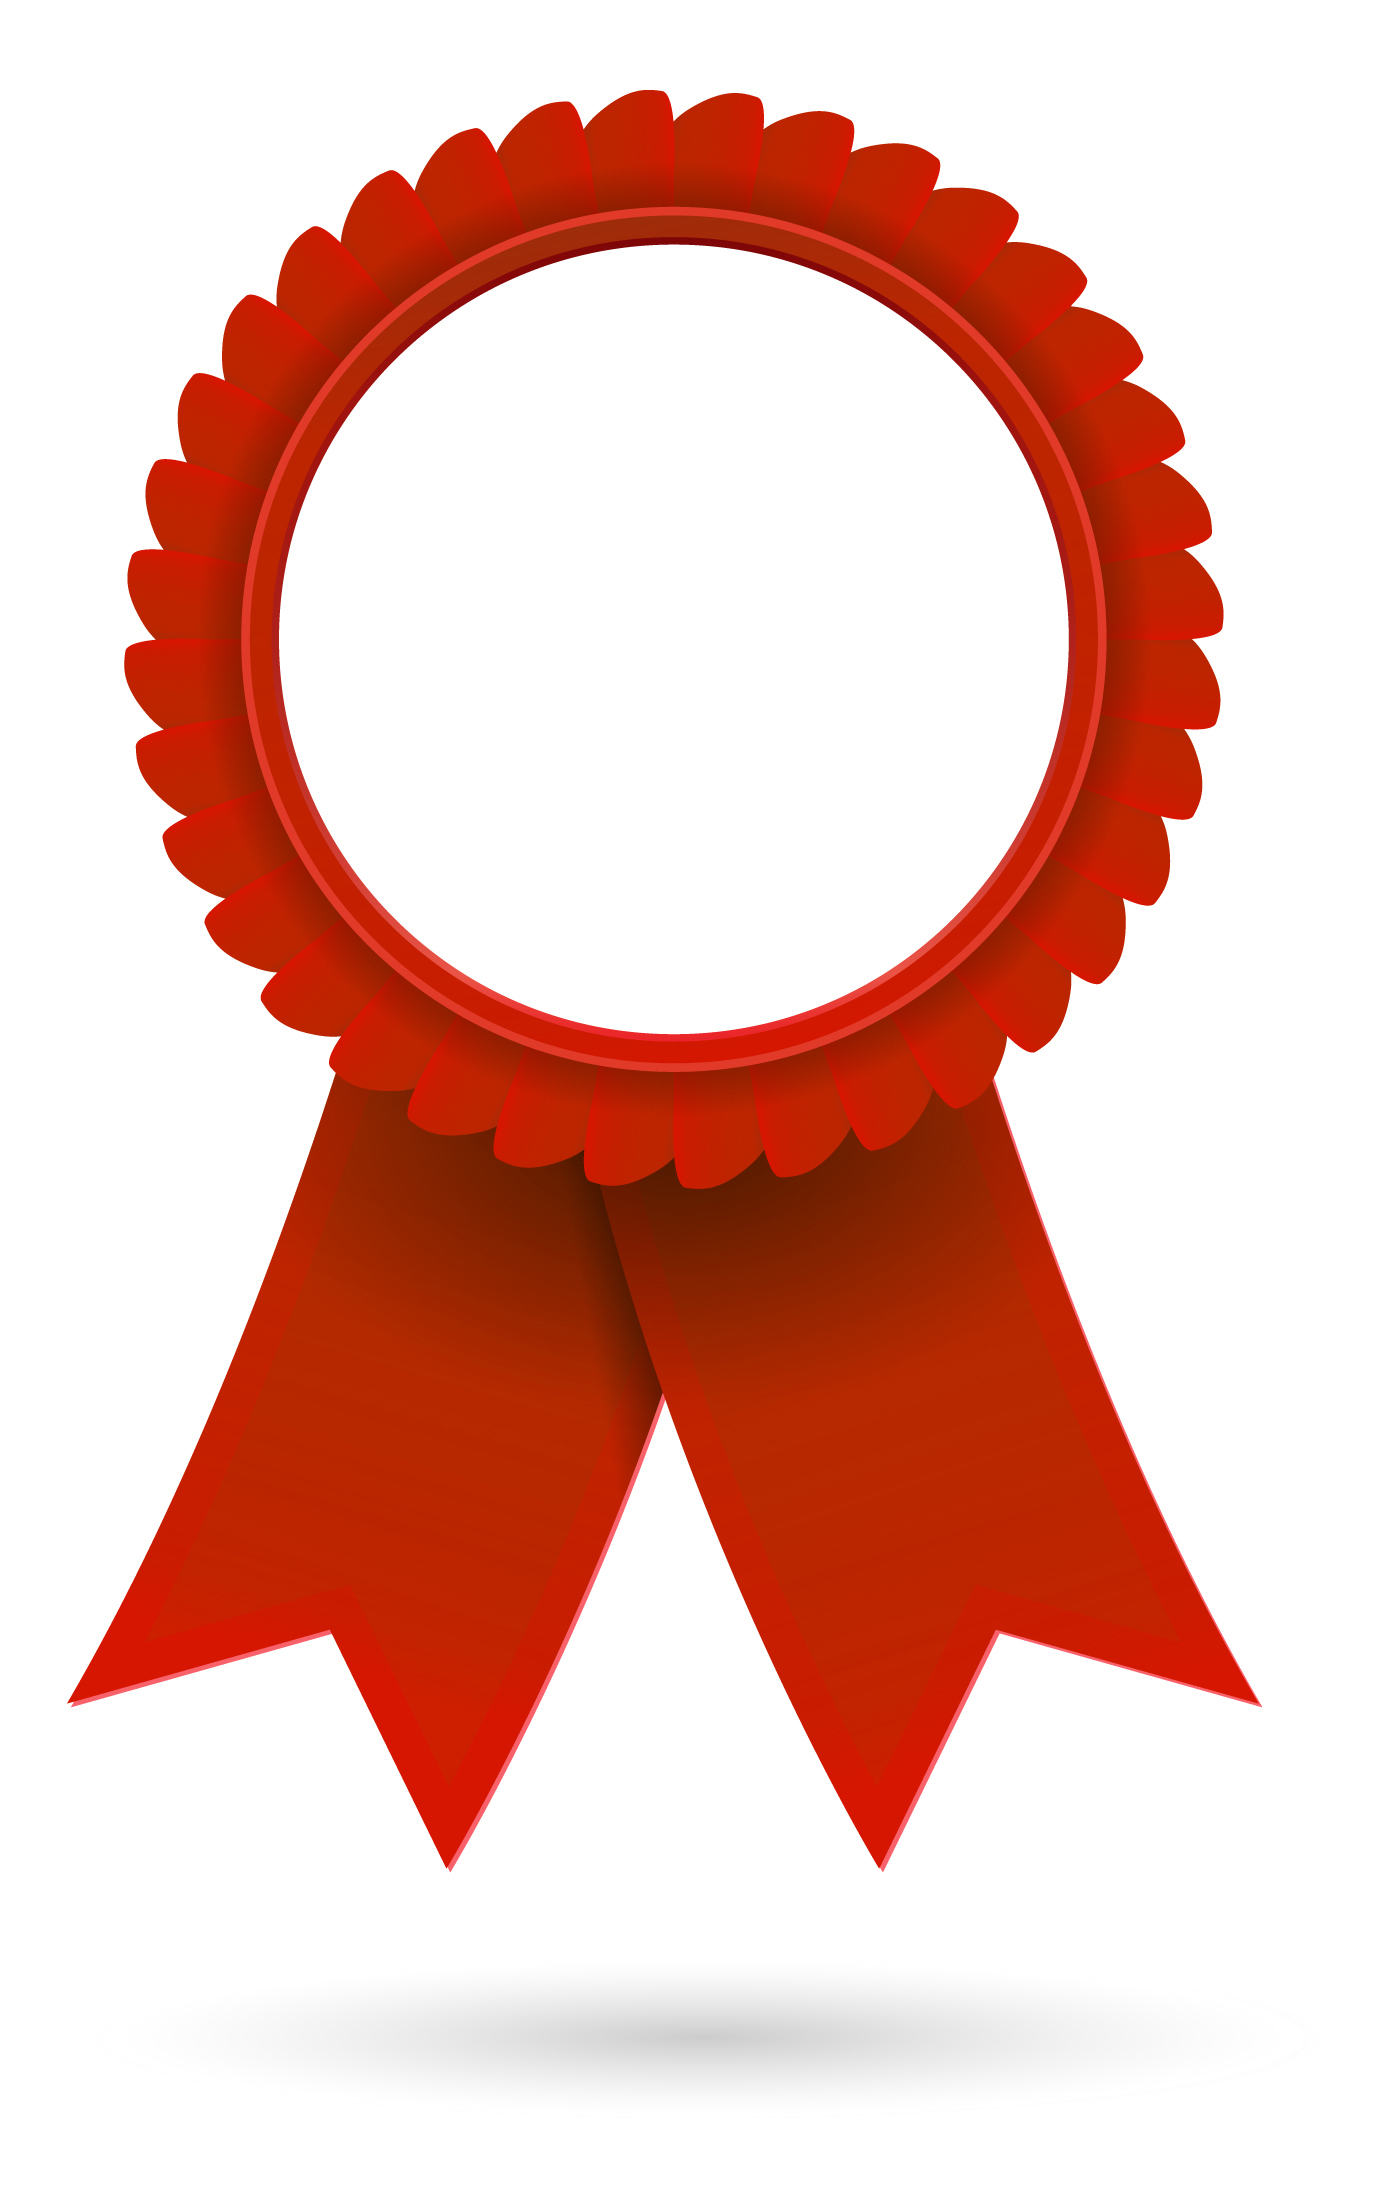 Ribbon : Pictures Of Red Ribbons - ClipArt Best